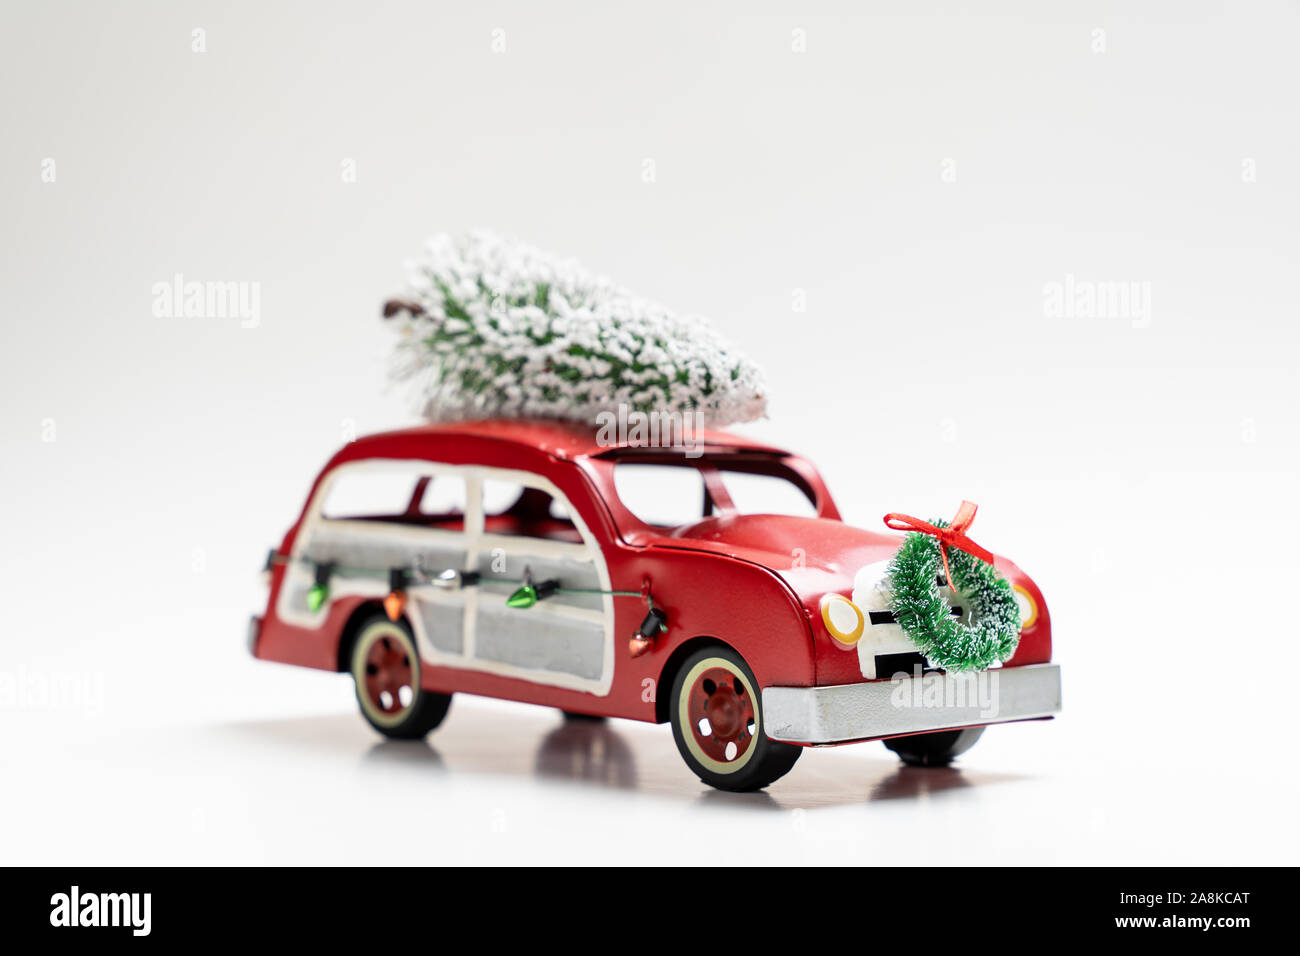 Little Red Vintage Car Carrying A Christmas Tree On Top Stock Photo Alamy